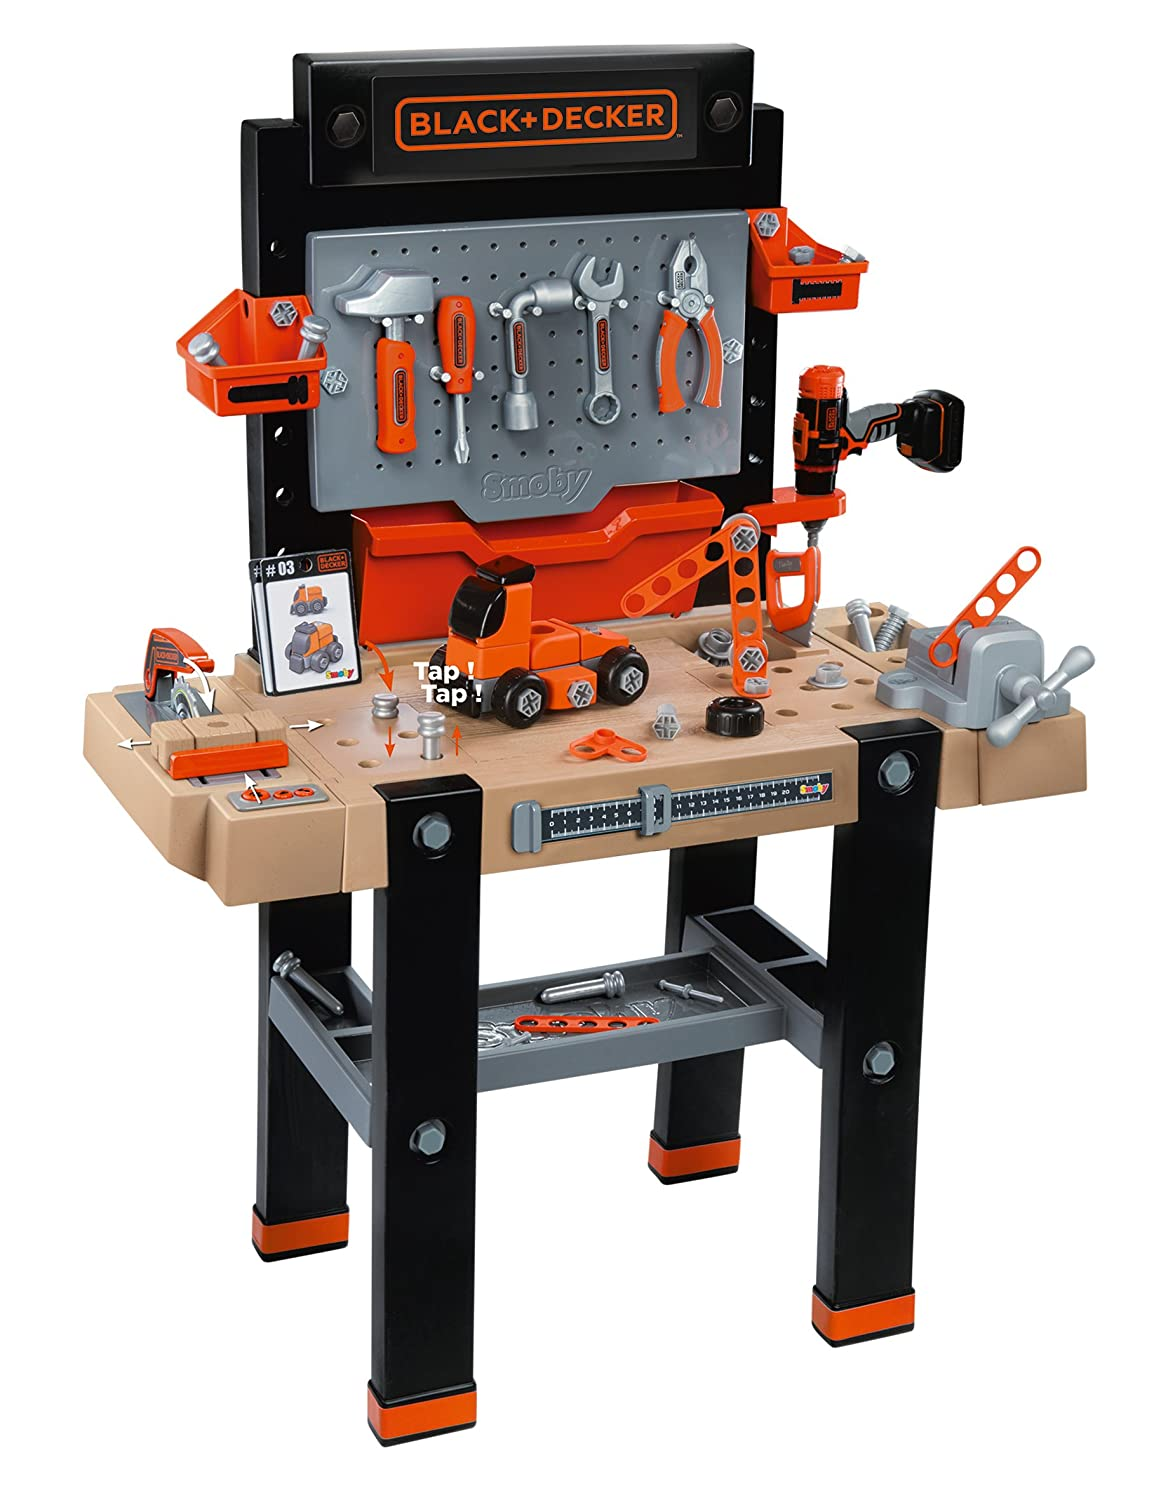 Smoby 360702 Black + Decker Super Werkbank Center